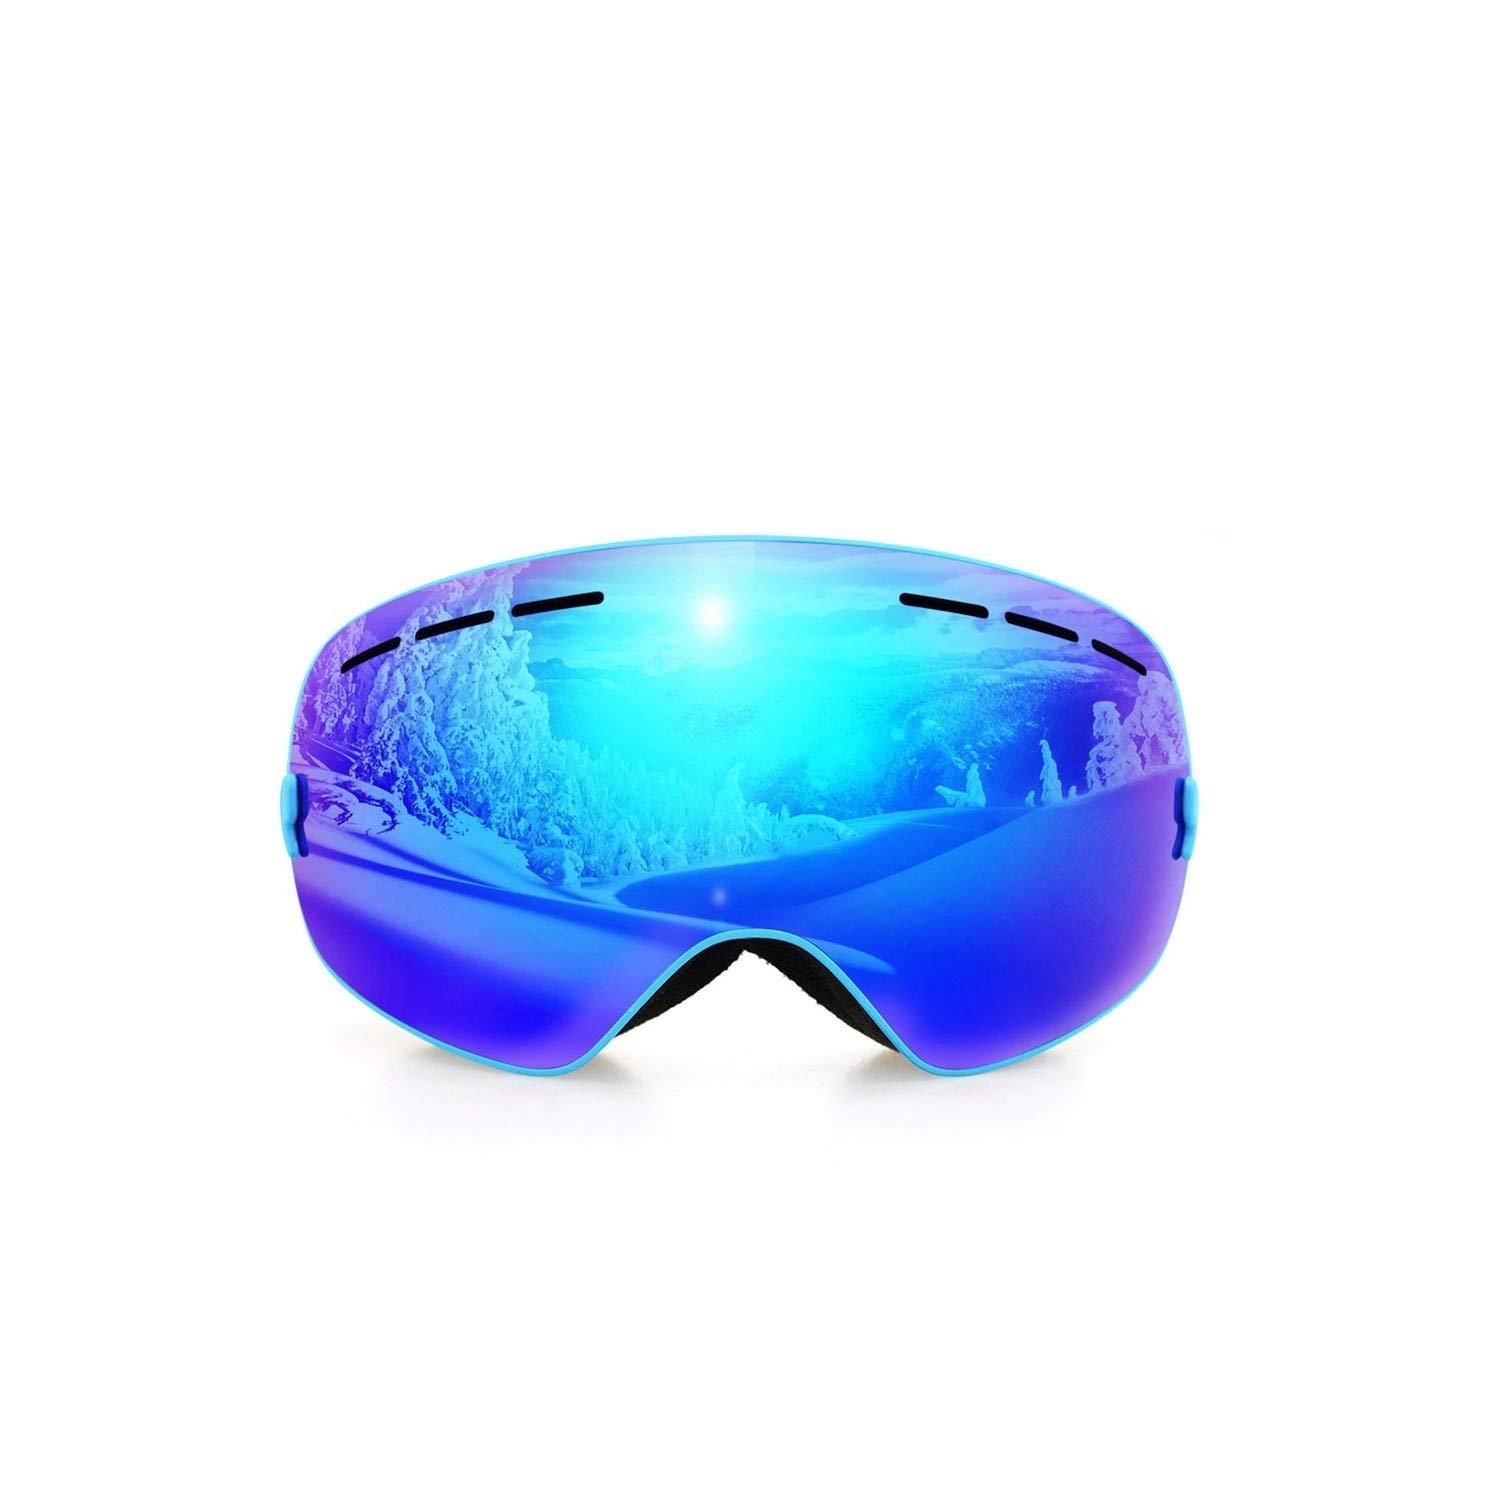 Frame blueee1 Snowboard Skis with Night Vision Ski Lens Snow Eyewear Adult